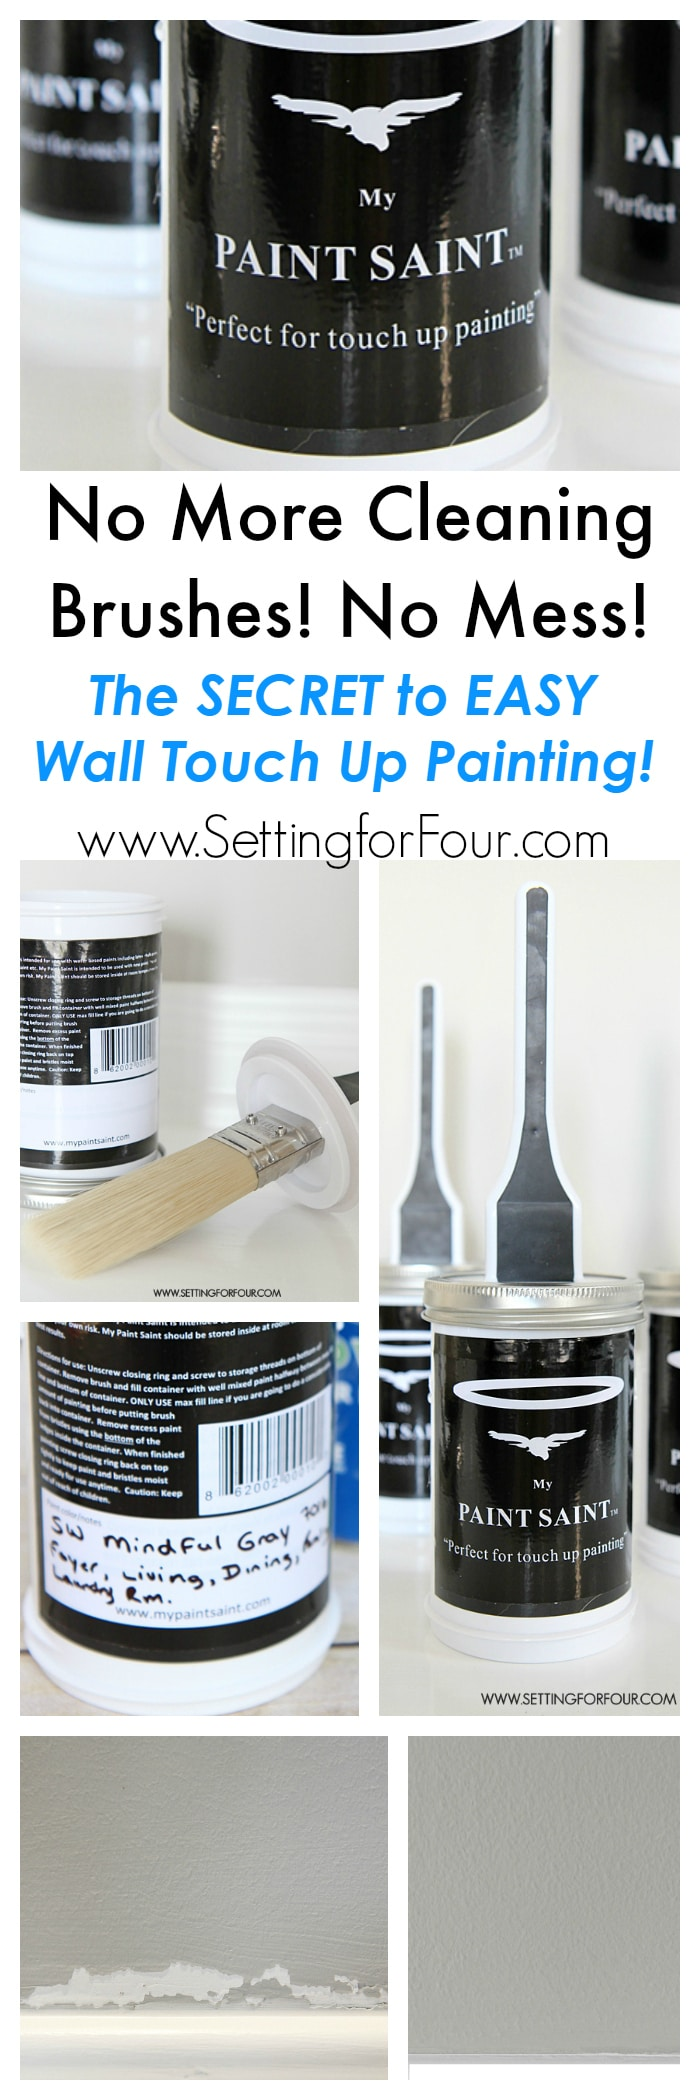 The Easy Way to Touch Up Wall Paint! I tried this and am AMAZED! See the SECRET to easy, mess free wall touch up painting! No more cleaning brushes or dealing with old rusted cans of paint- hurray!